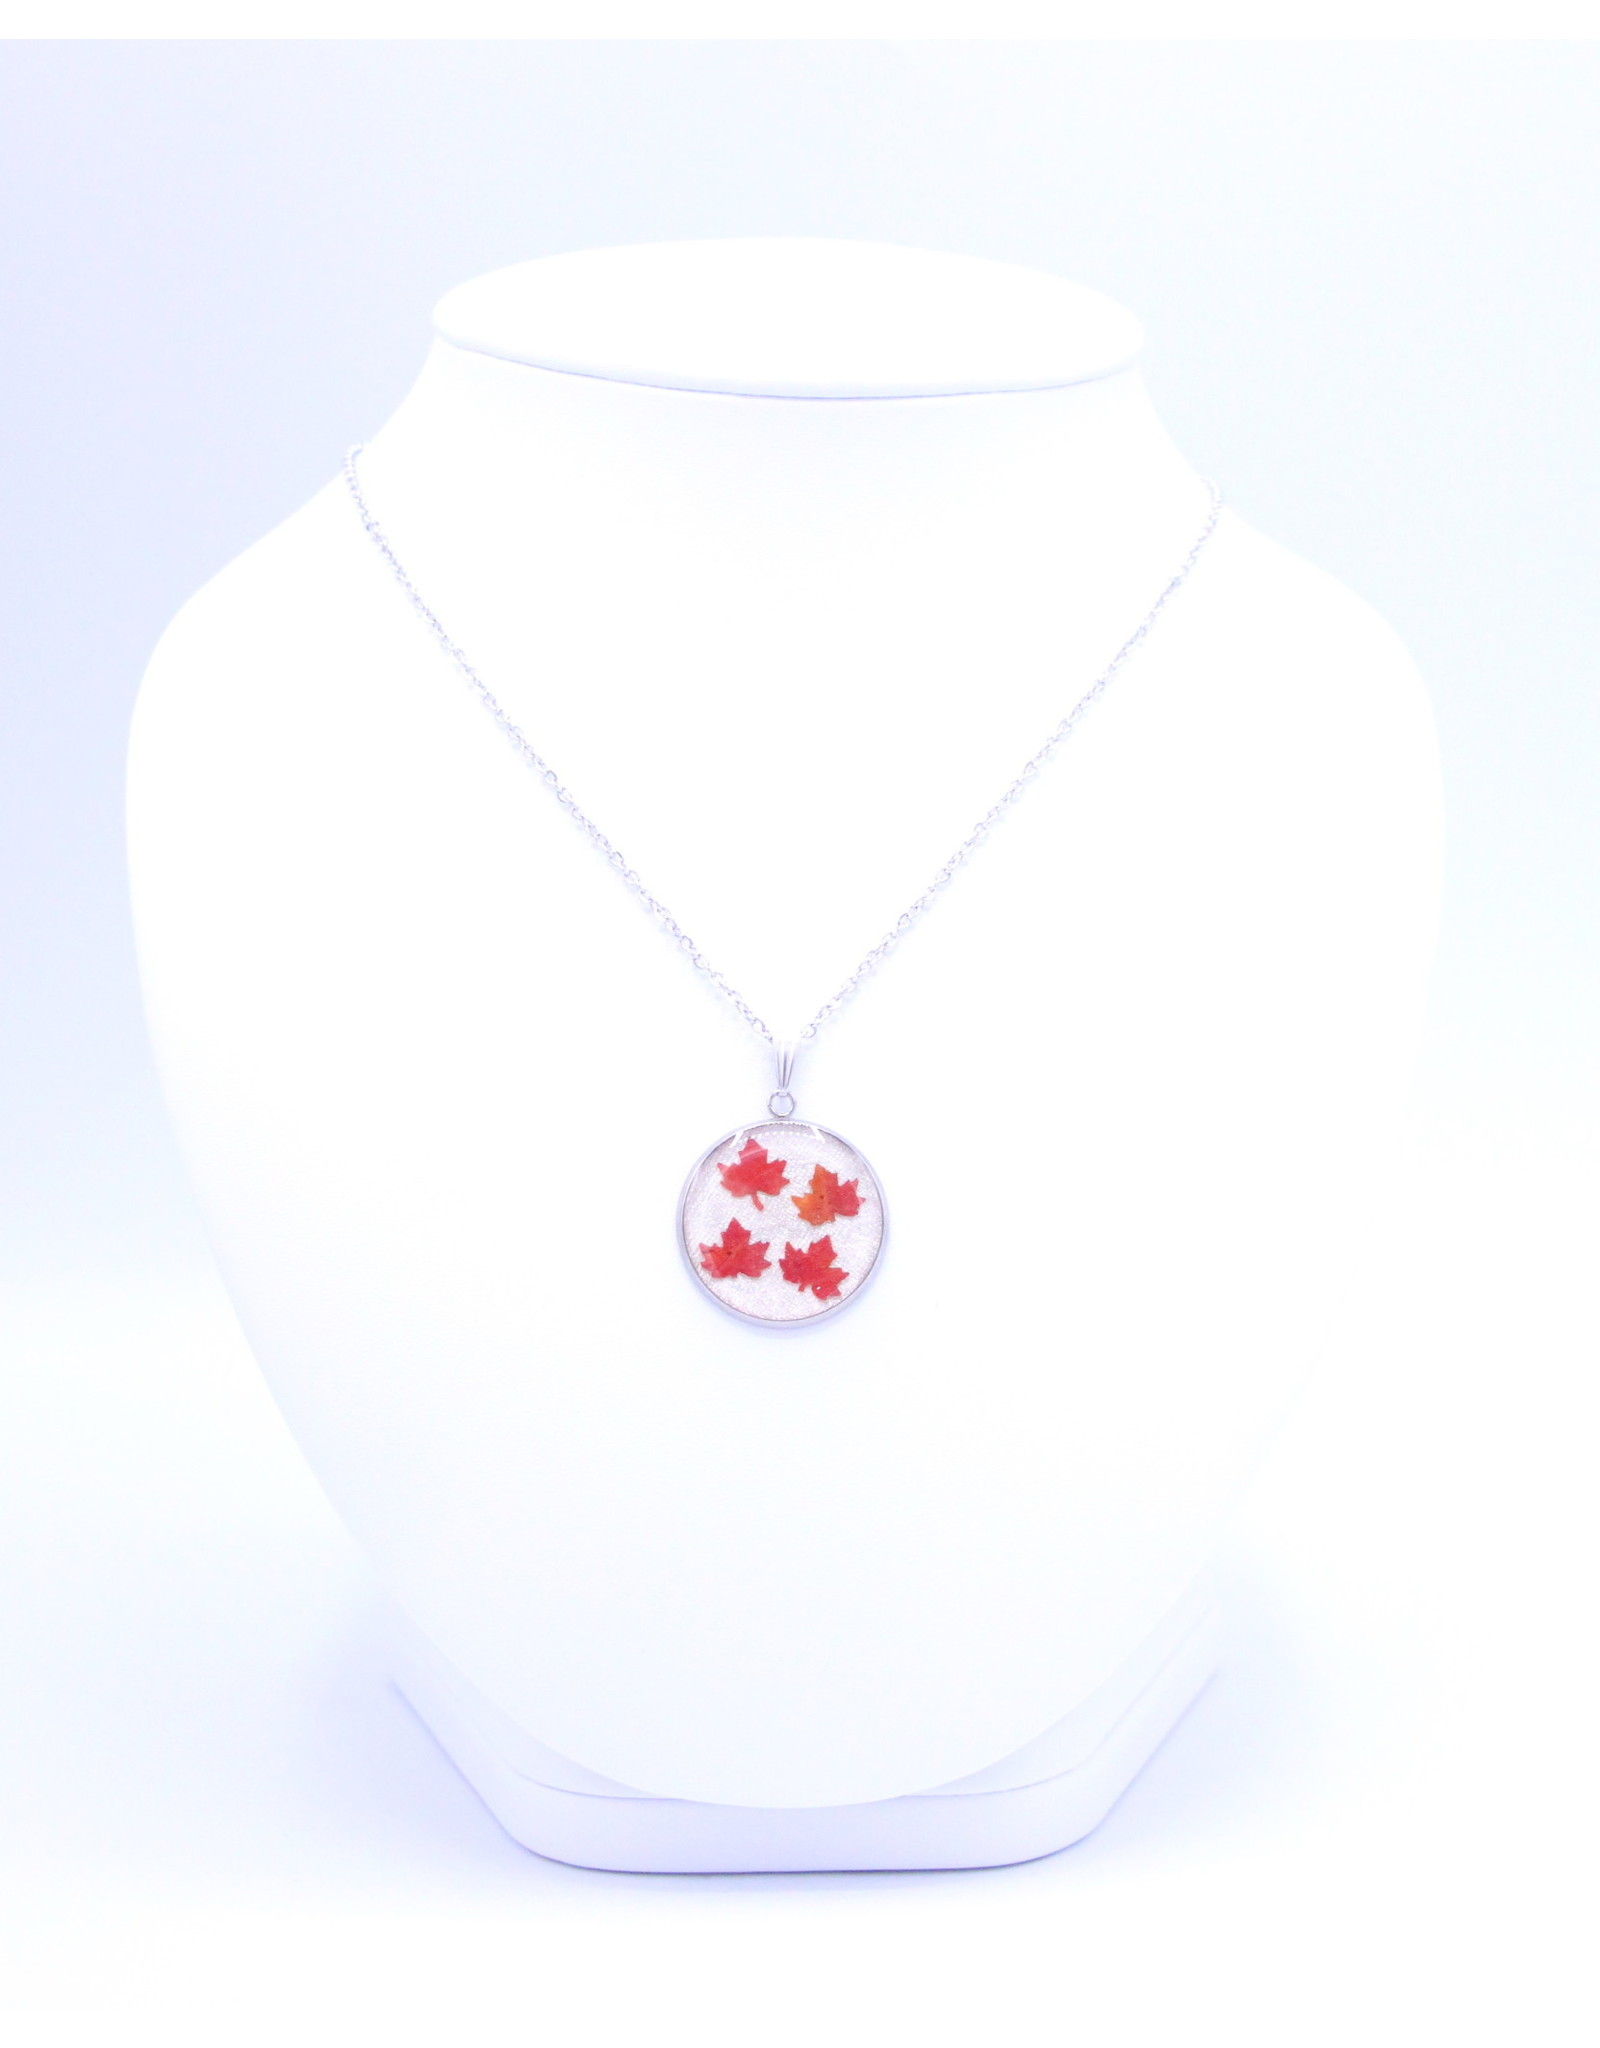 25mm Maple Leaf Necklace White - N25MLW2